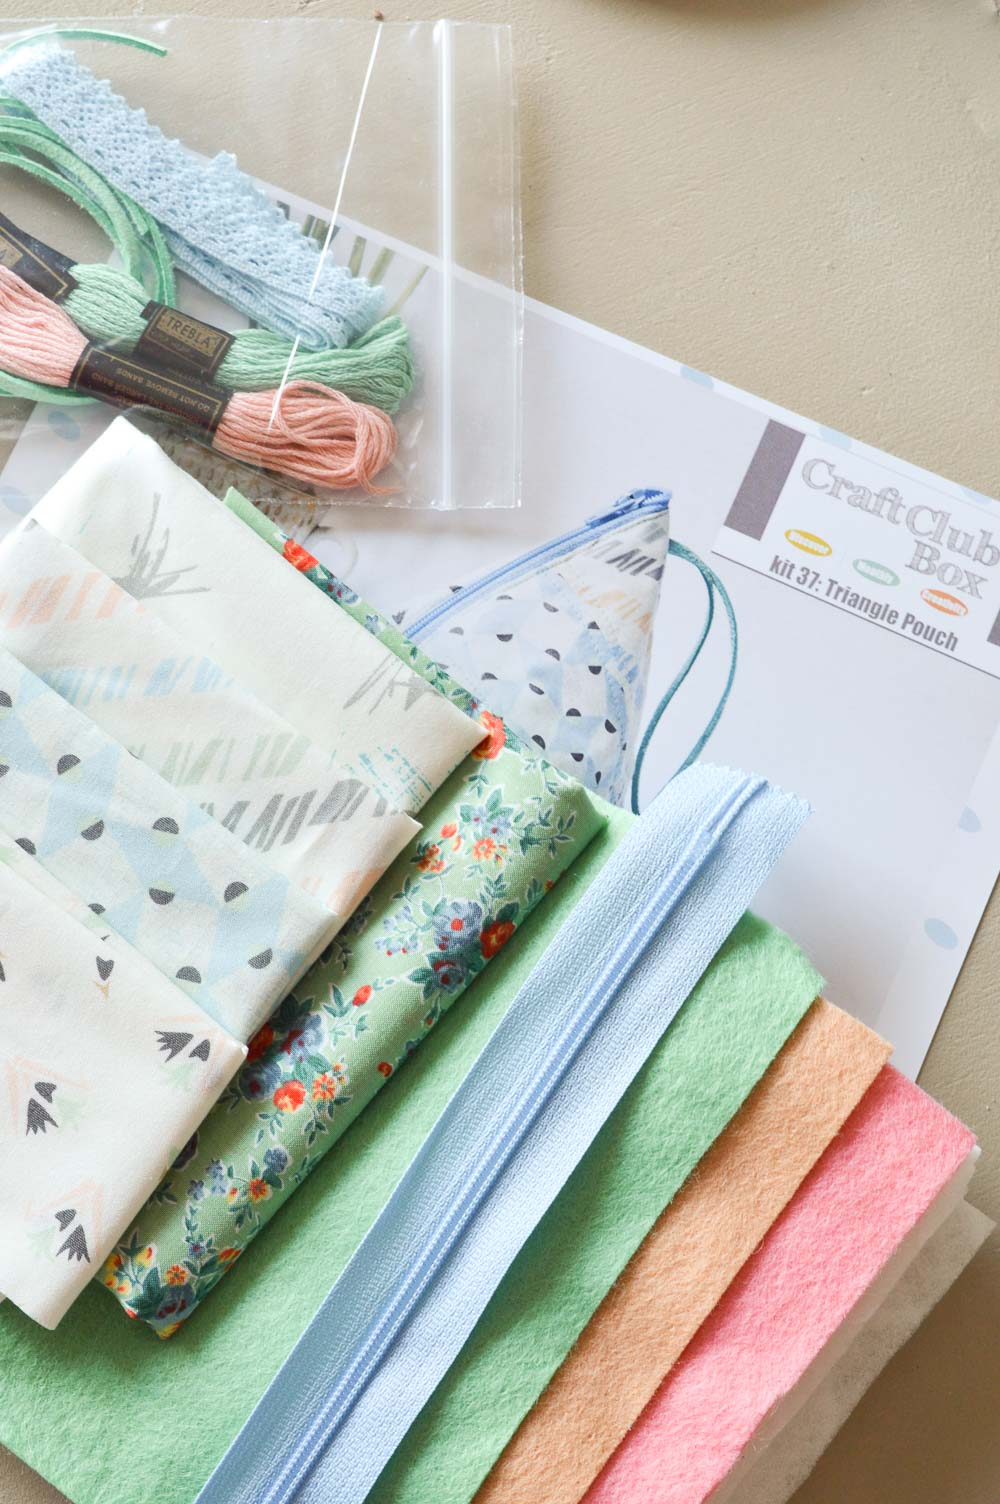 craftclubbox subscription review Crafting Fingers-5